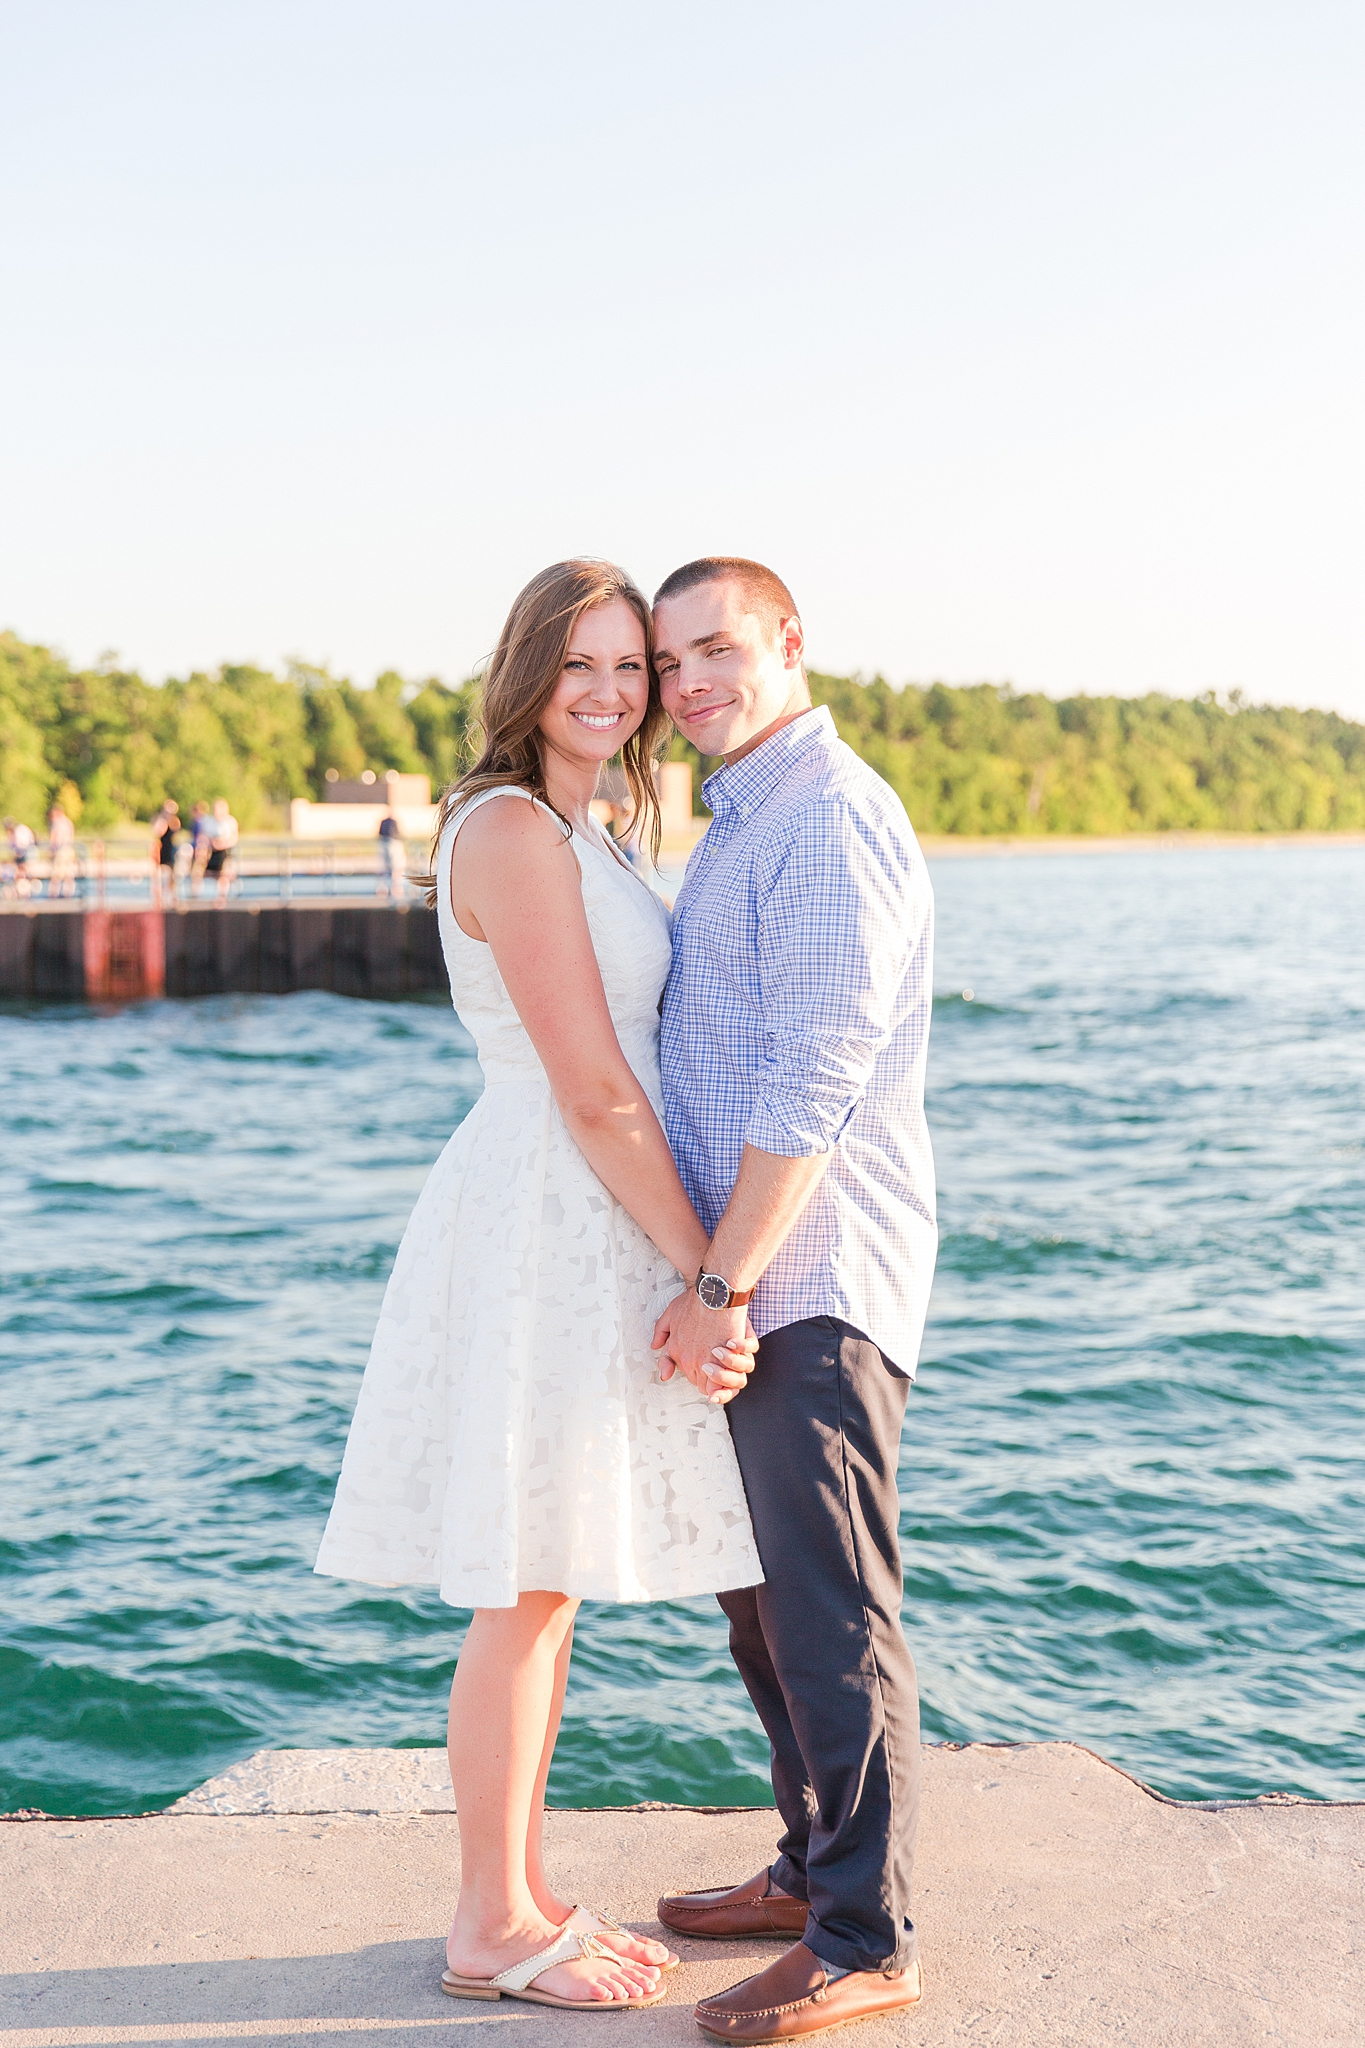 waterfront-lighthouse-engagement-photography-in-charlevoix-mi-by-courtney-carolyn-photography_0007.jpg